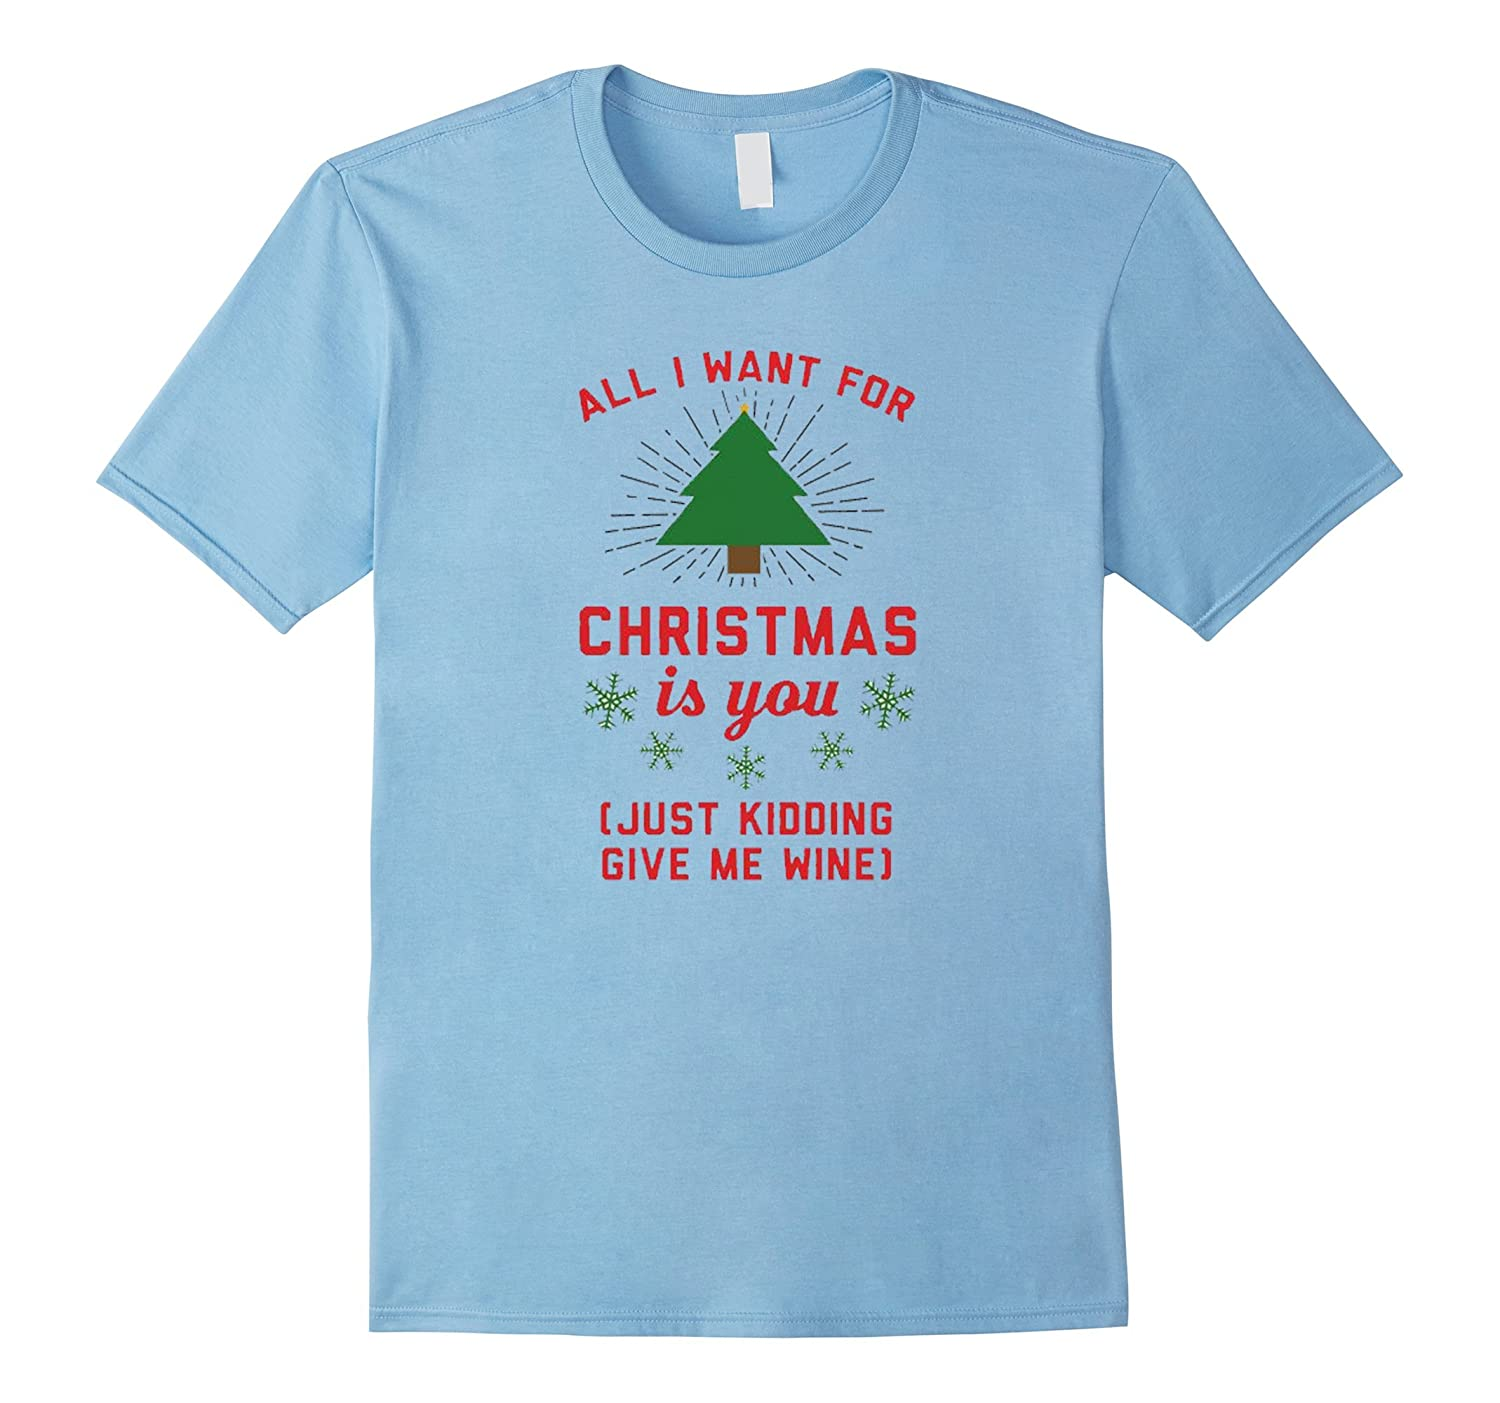 All I want for christmas is you. Give me wine T shirt-CL